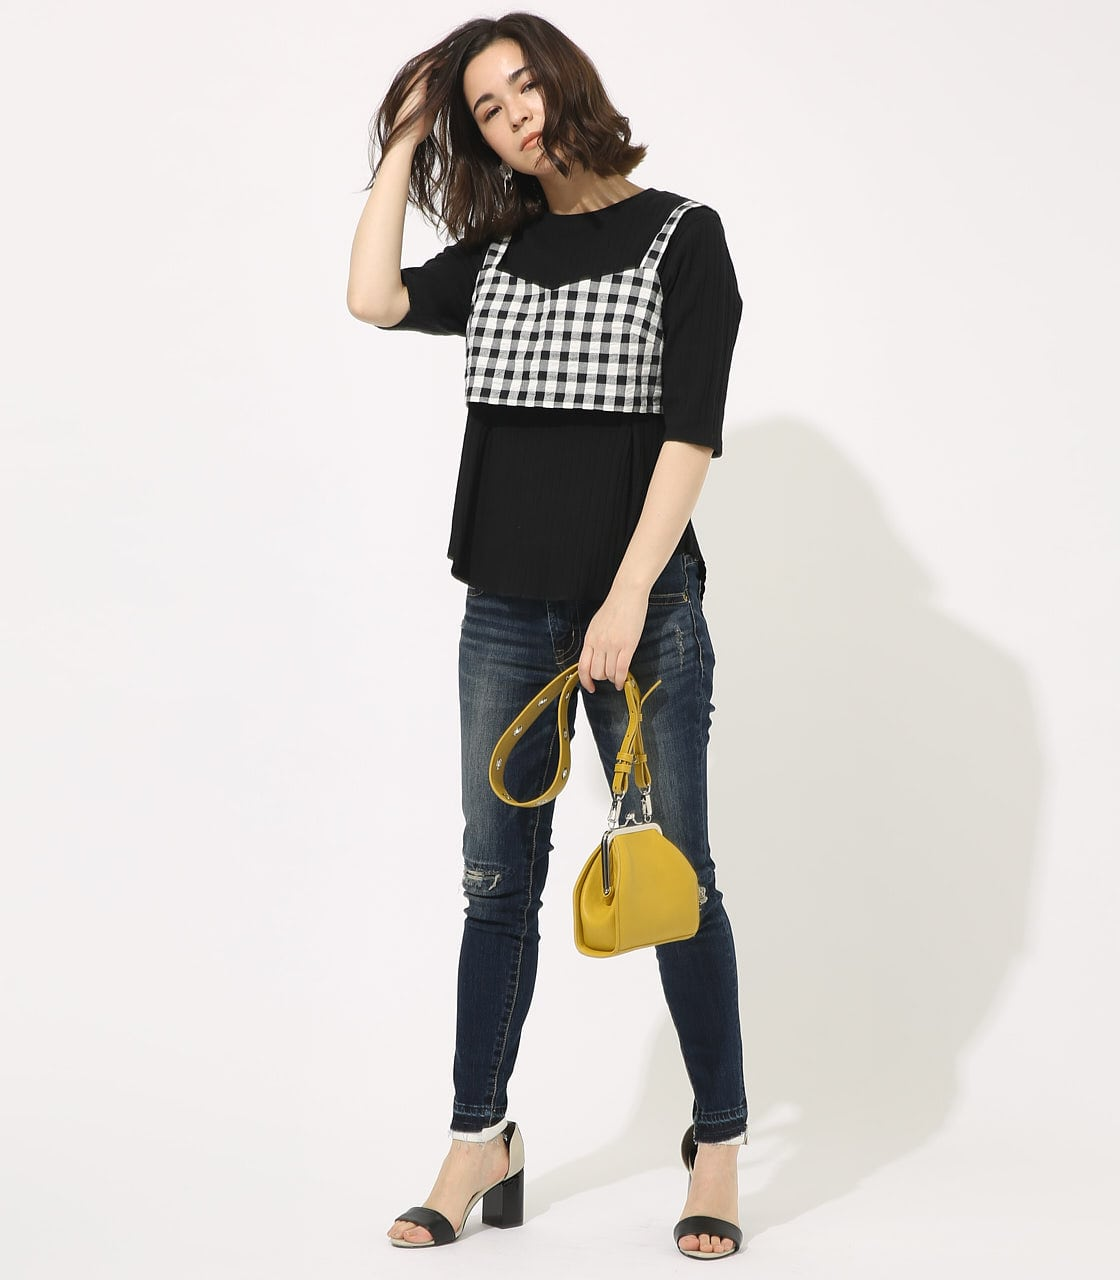 【AZUL BY MOUSSY】GINGHAM CHECK BUSTIER TOPS 【MOOK49掲載 90054】 詳細画像 柄BLK 3